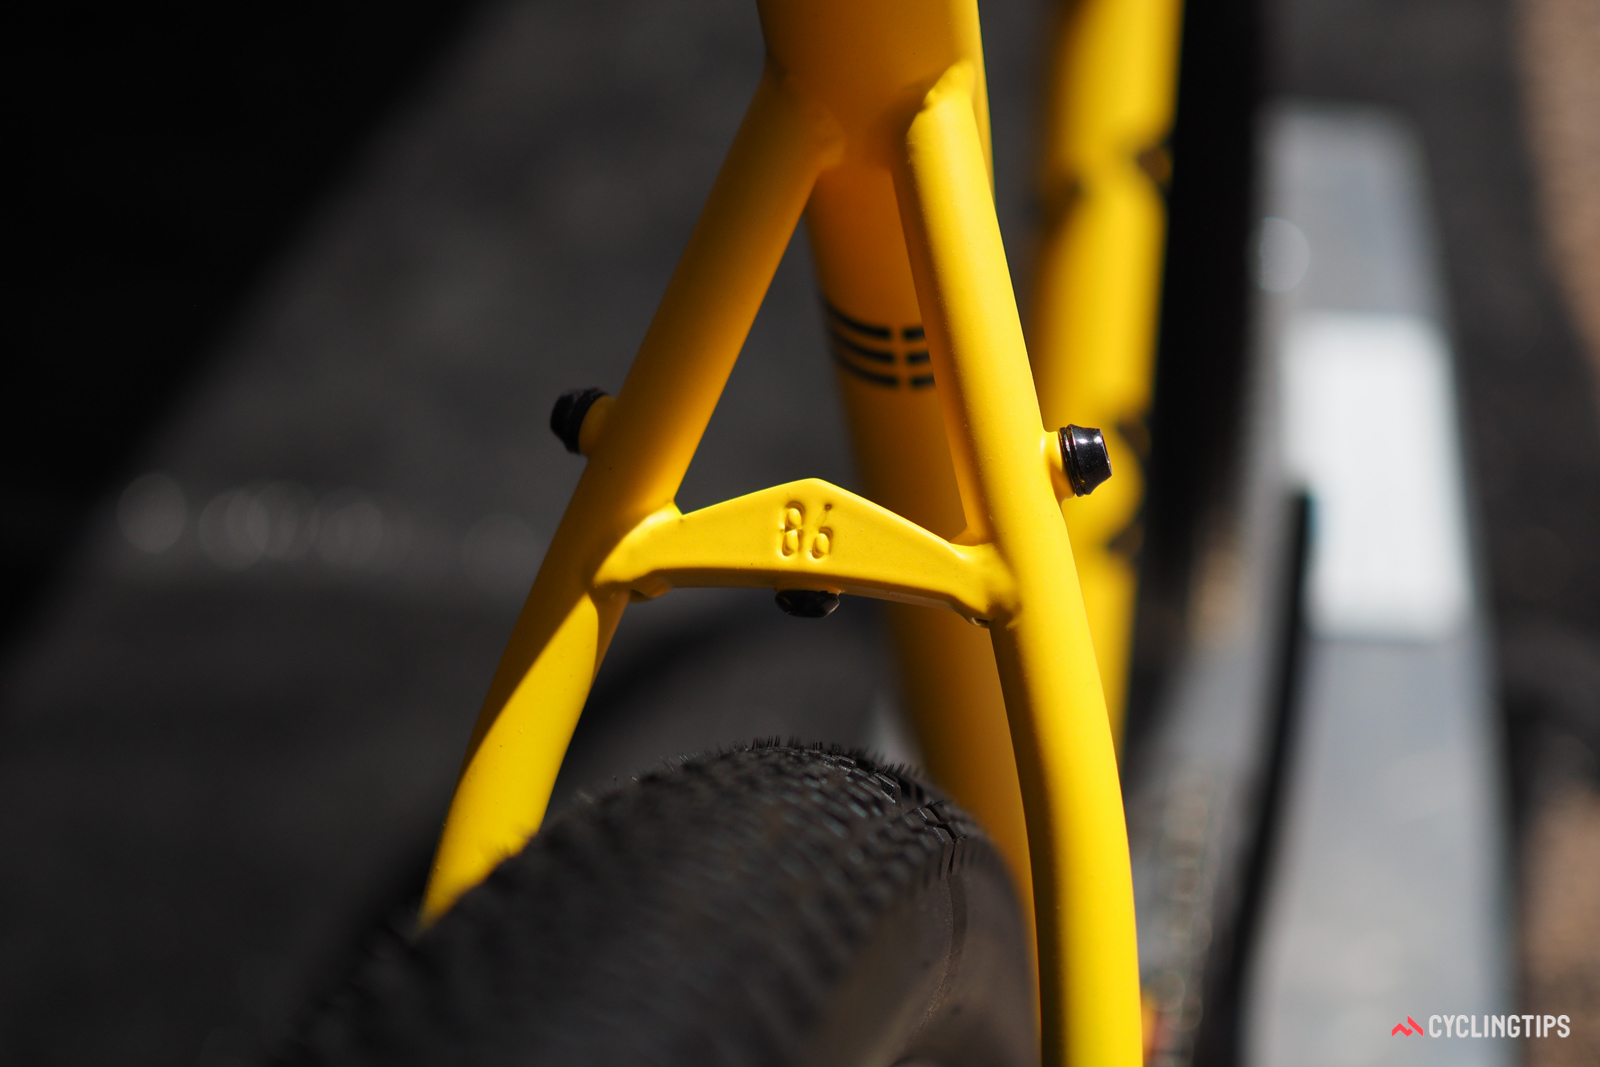 Marin may be a mass-produced bike company, but neat details like this are still very much appreciated.